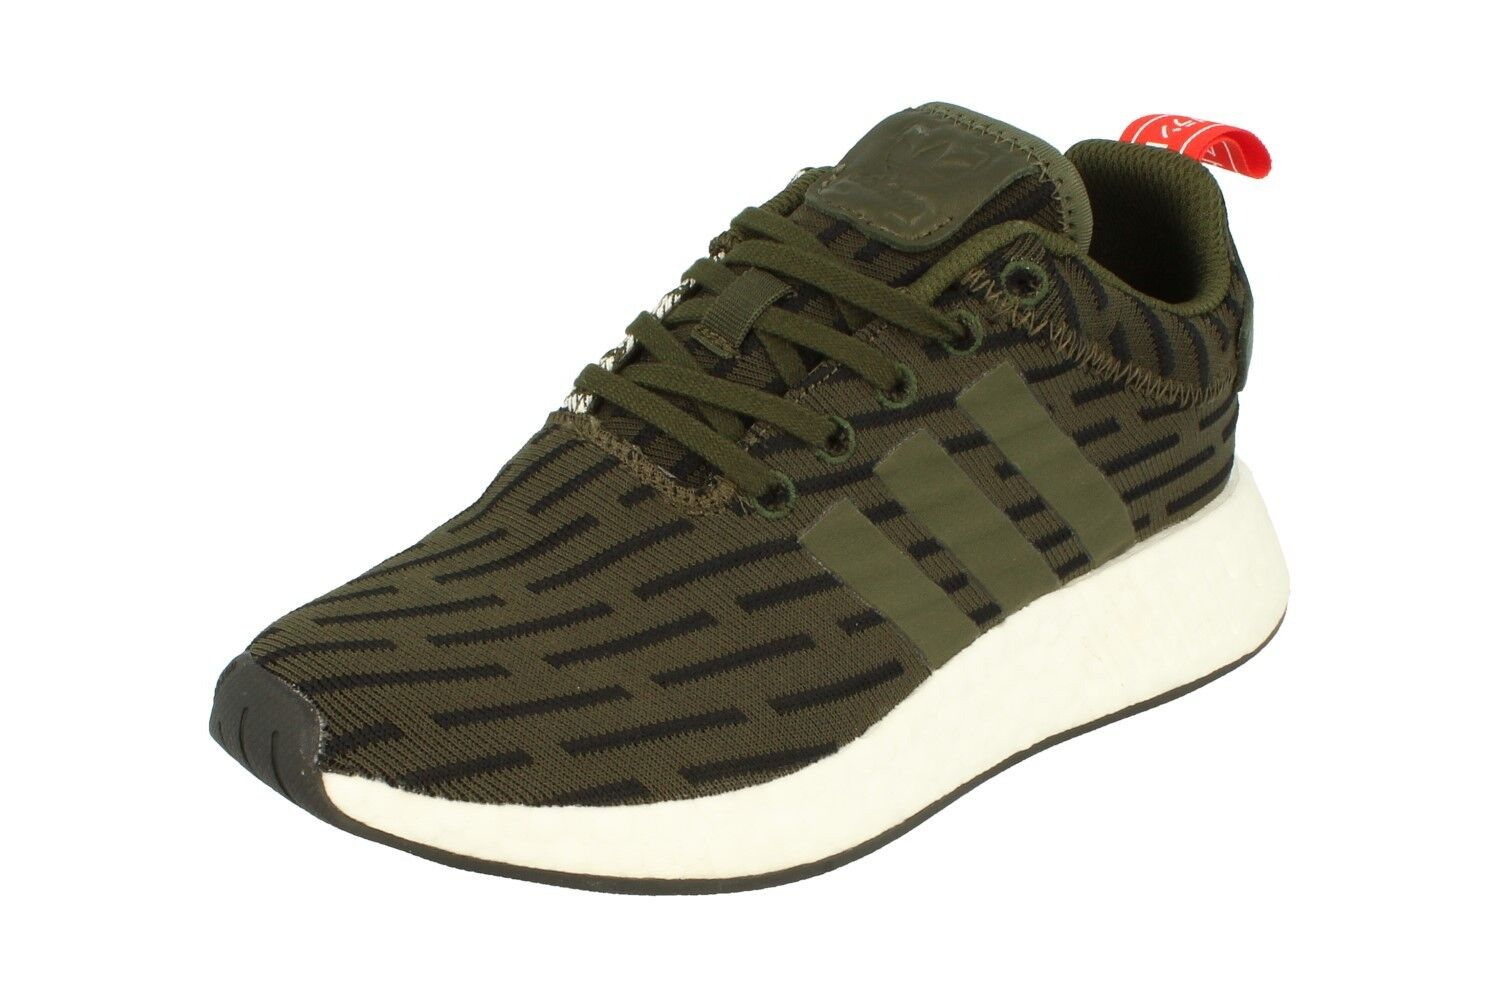 Adidas Originals Nmd_R2 Men Running Trainers Sneakers BY2500 Seasonal price cuts, discount benefits